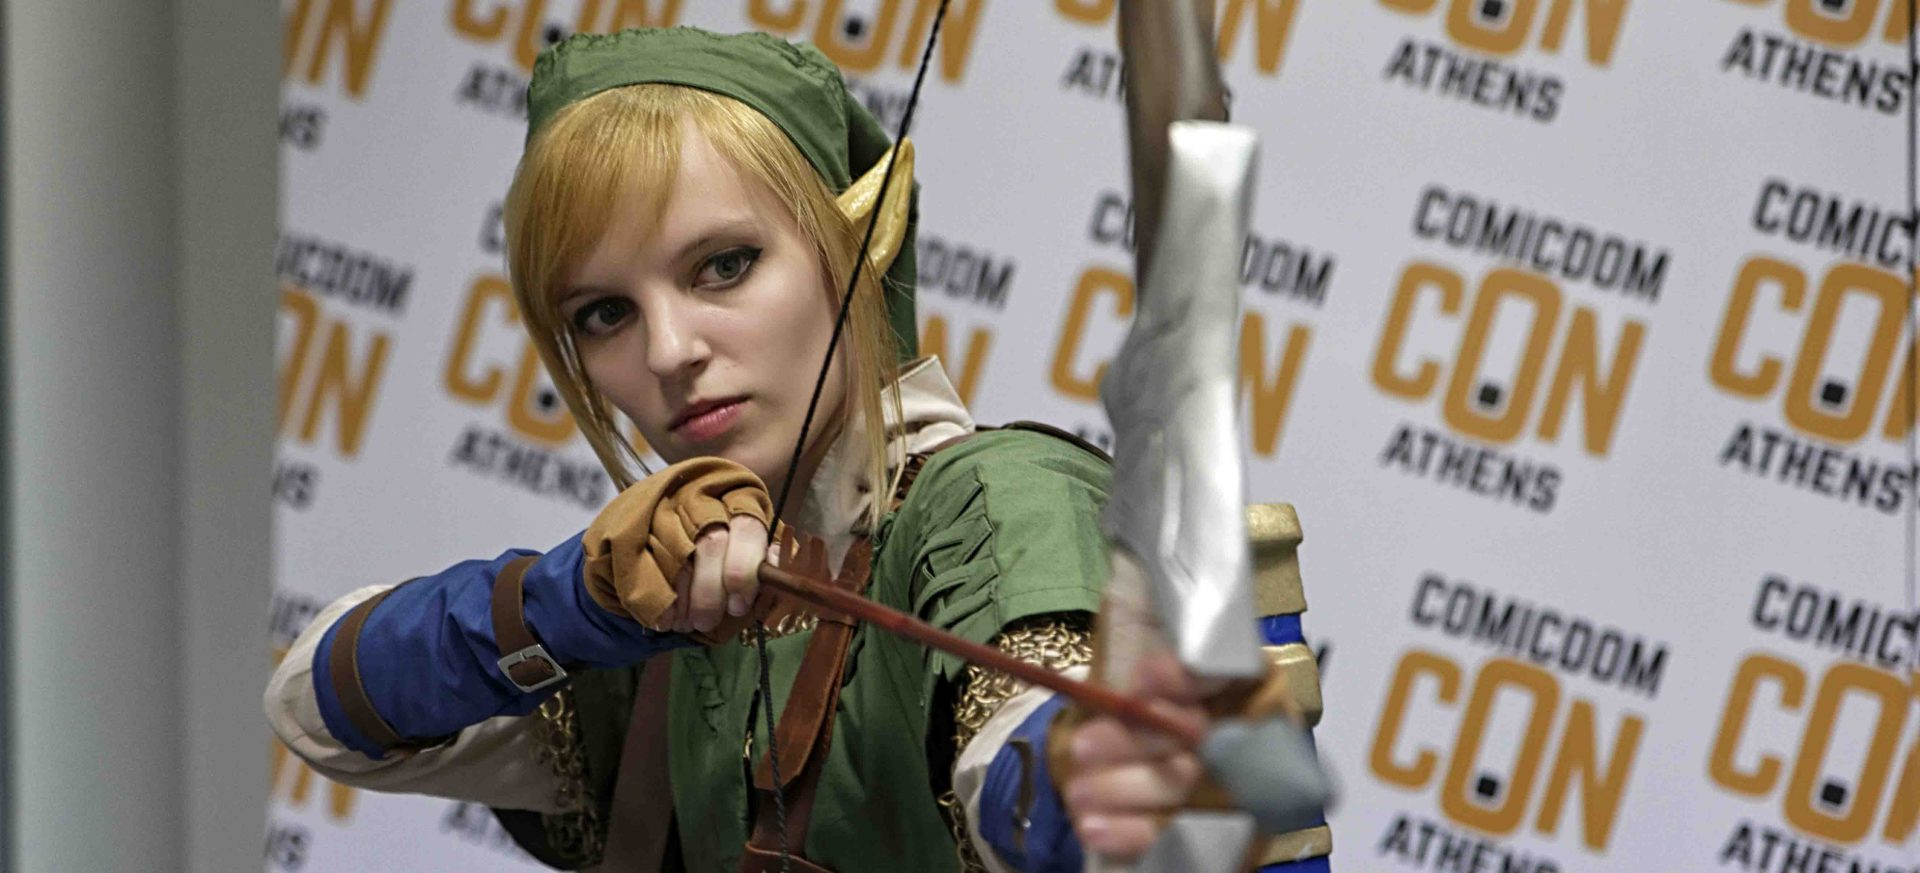 Comicdom Cosplay 2019 & Live Streaming Tickets